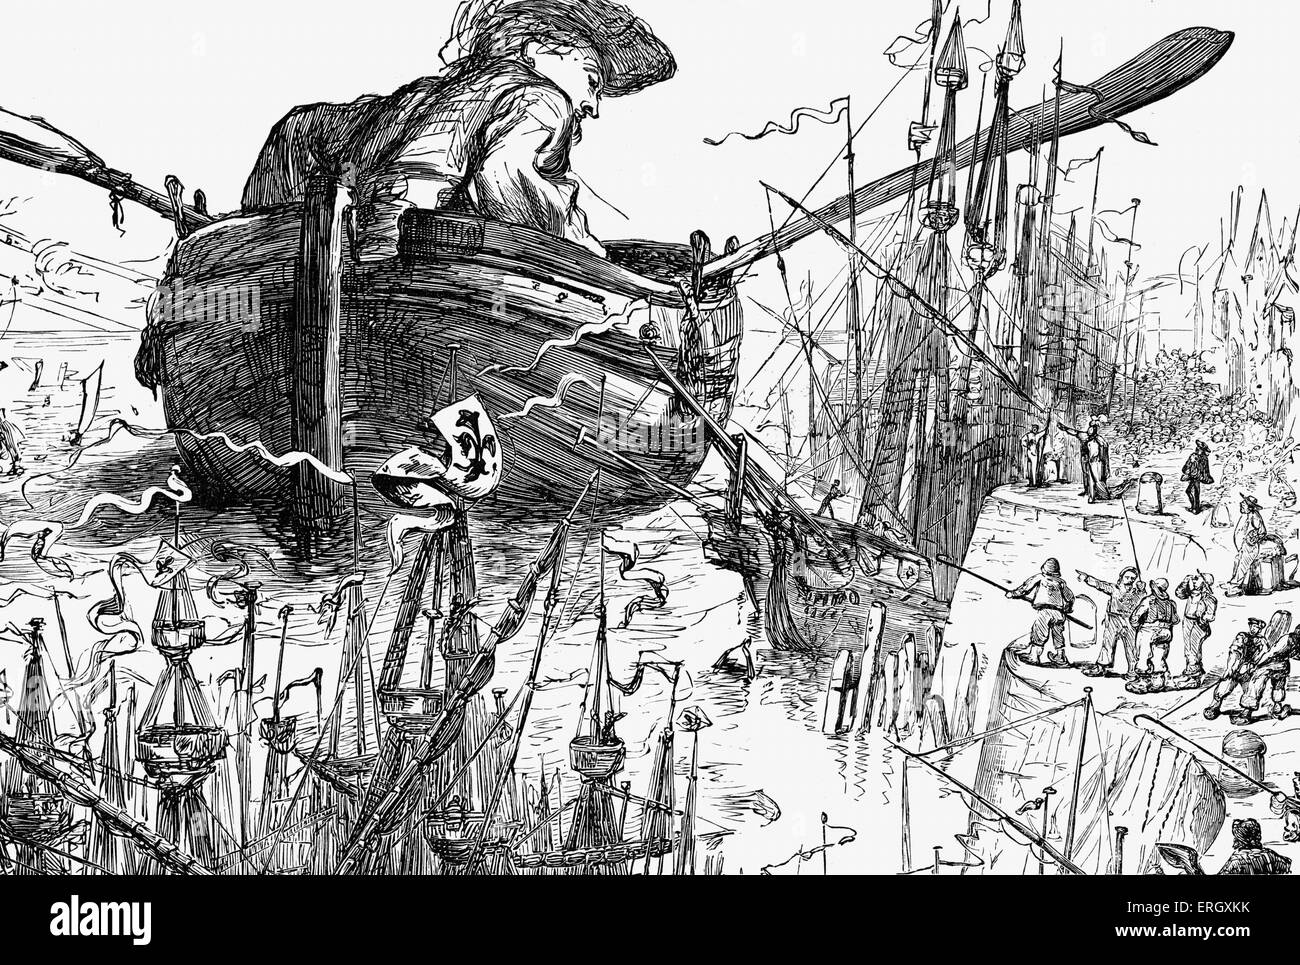 Gulliver's Travels - novel by Jonathan Swift. Part I: A Voyage To Lilliput. Last chapter. Gulliver rowing the - Stock Image